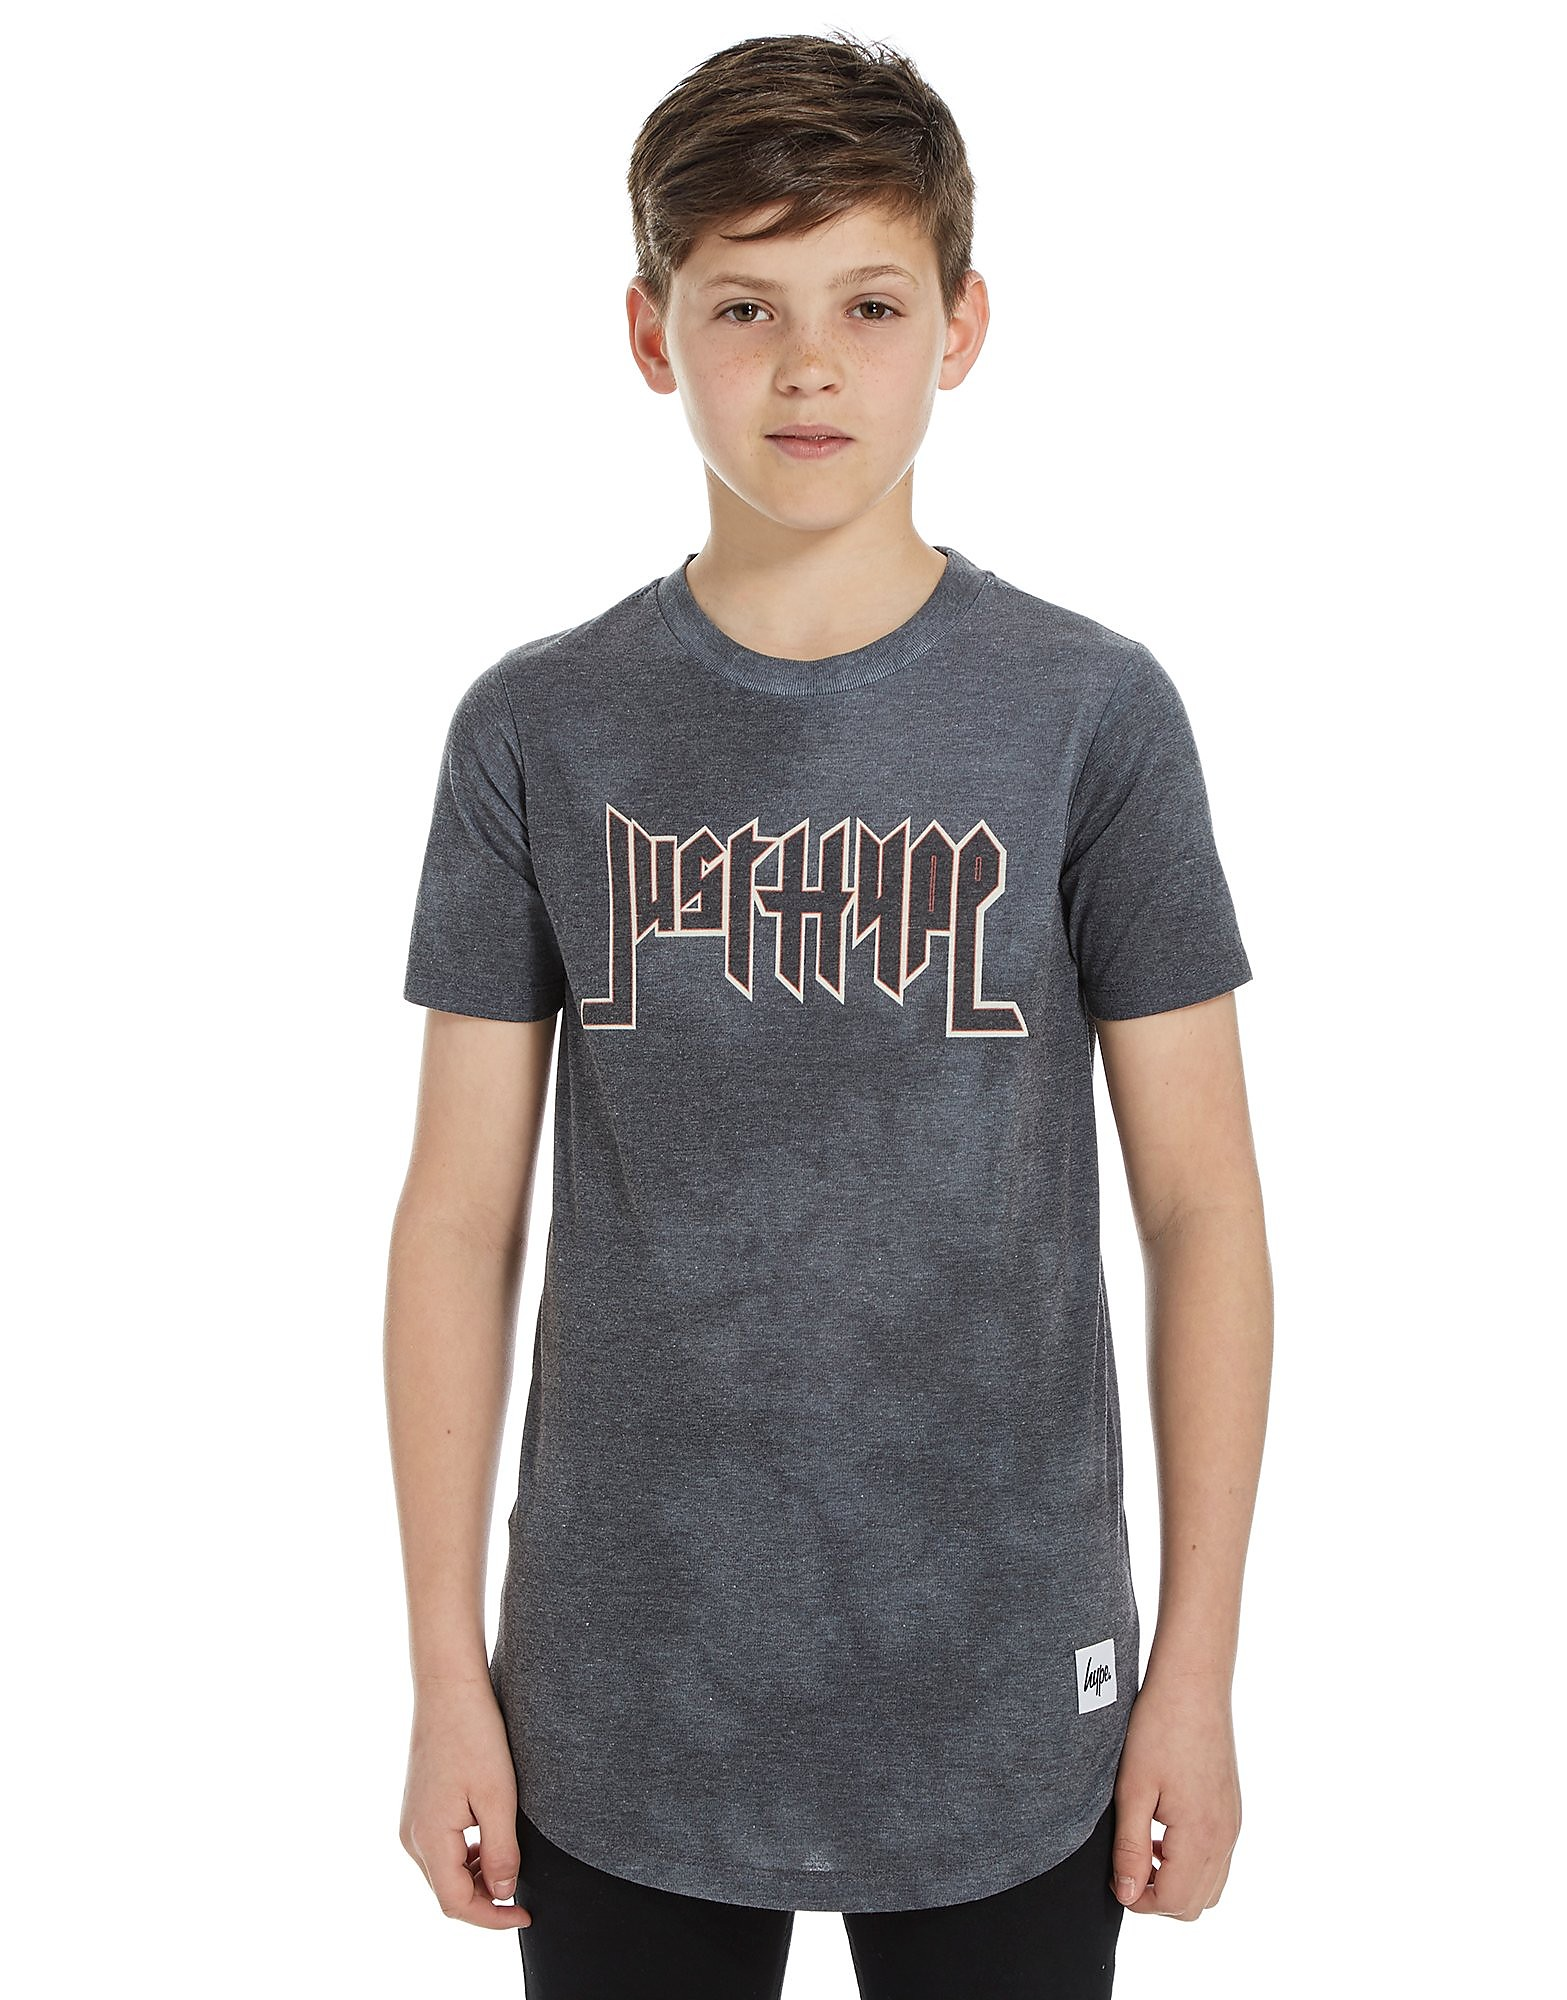 Hype Rock T-Shirt Junior